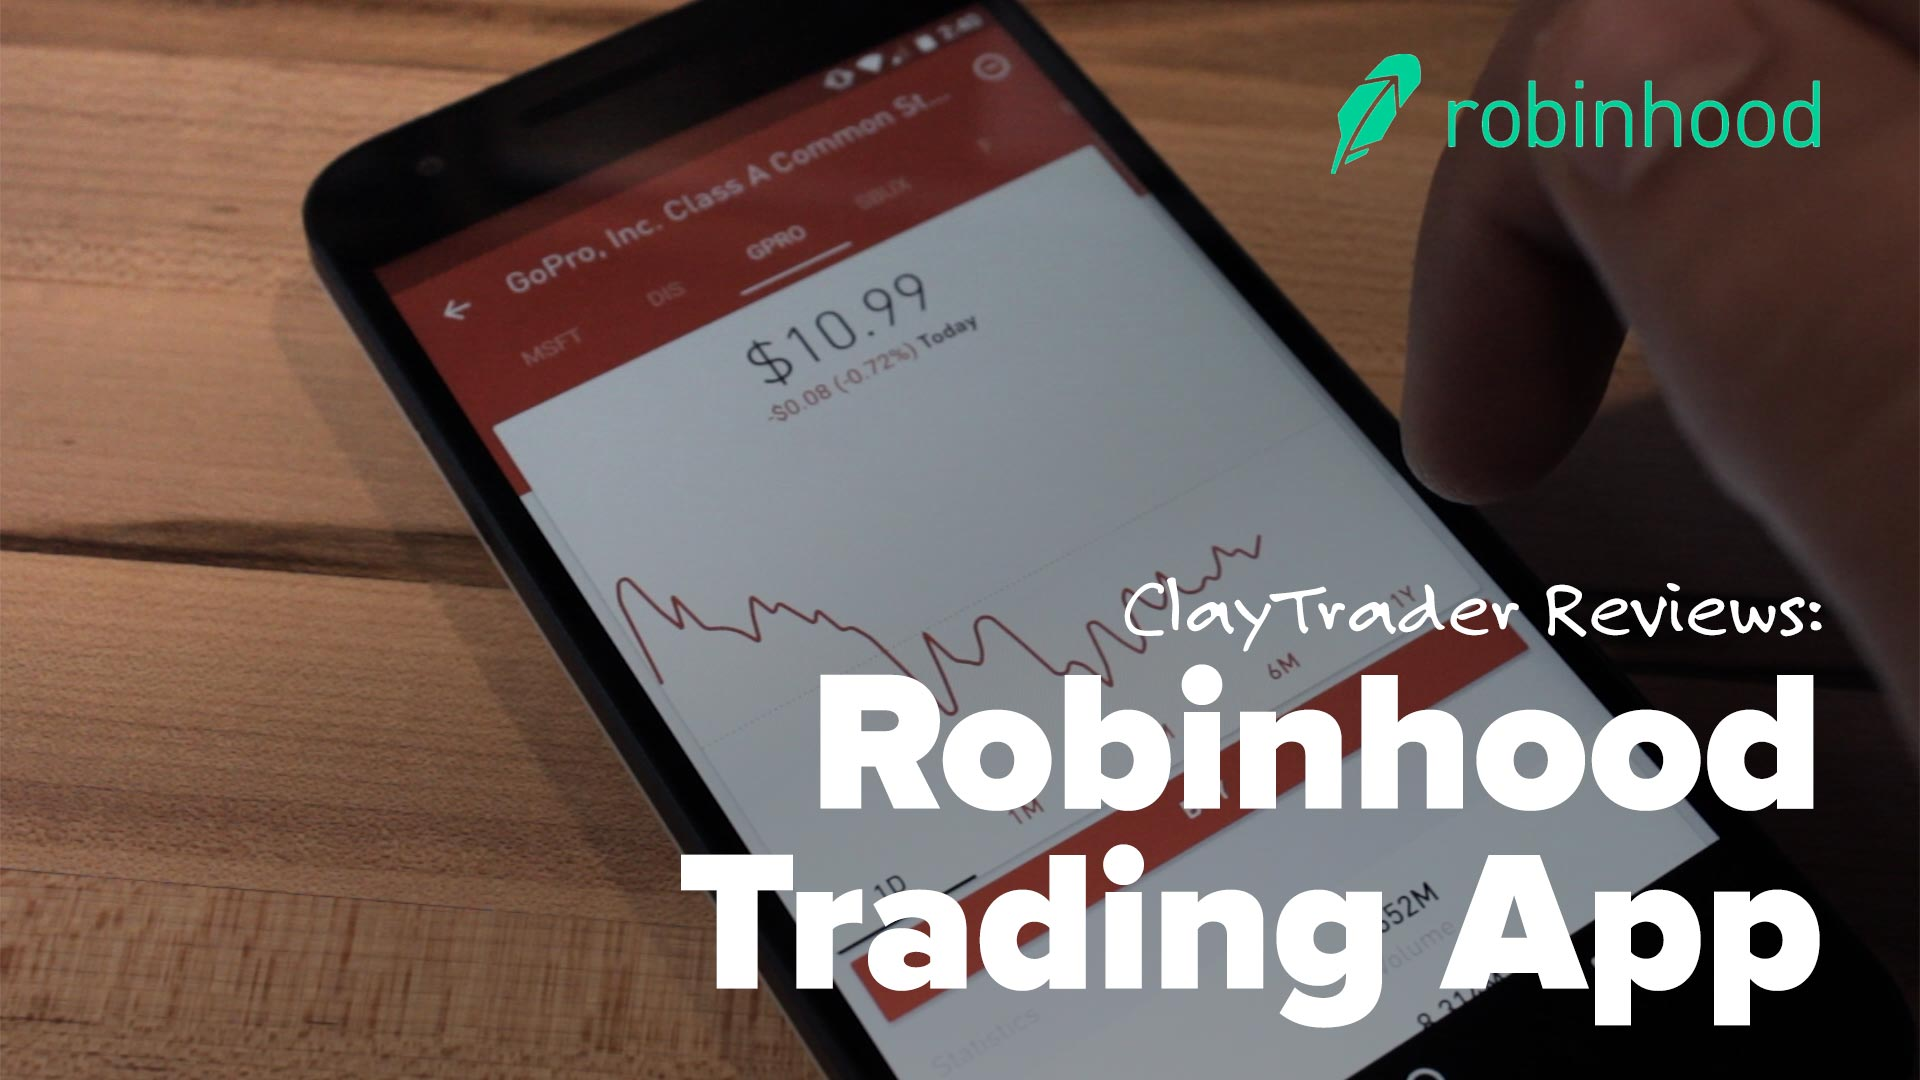 Robinhood Commission-Free Investing Warranty Contact